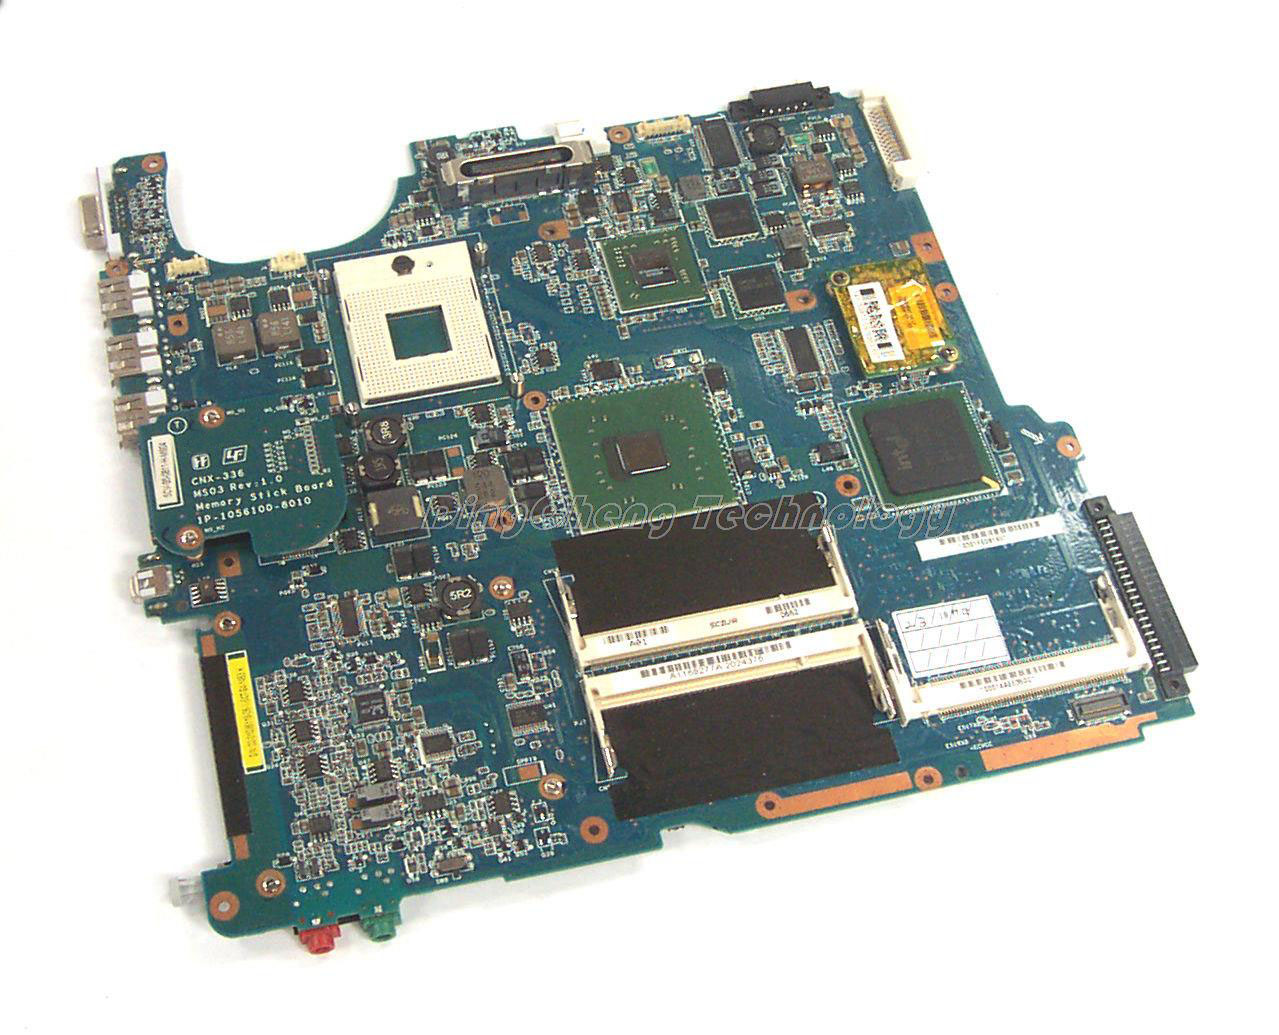 MBX 143 laptop Motherboard For Sony MBX-143 MS04-M/B A1168157A 1P-0058100-8012 non-integrated graphics cardMBX 143 laptop Motherboard For Sony MBX-143 MS04-M/B A1168157A 1P-0058100-8012 non-integrated graphics card